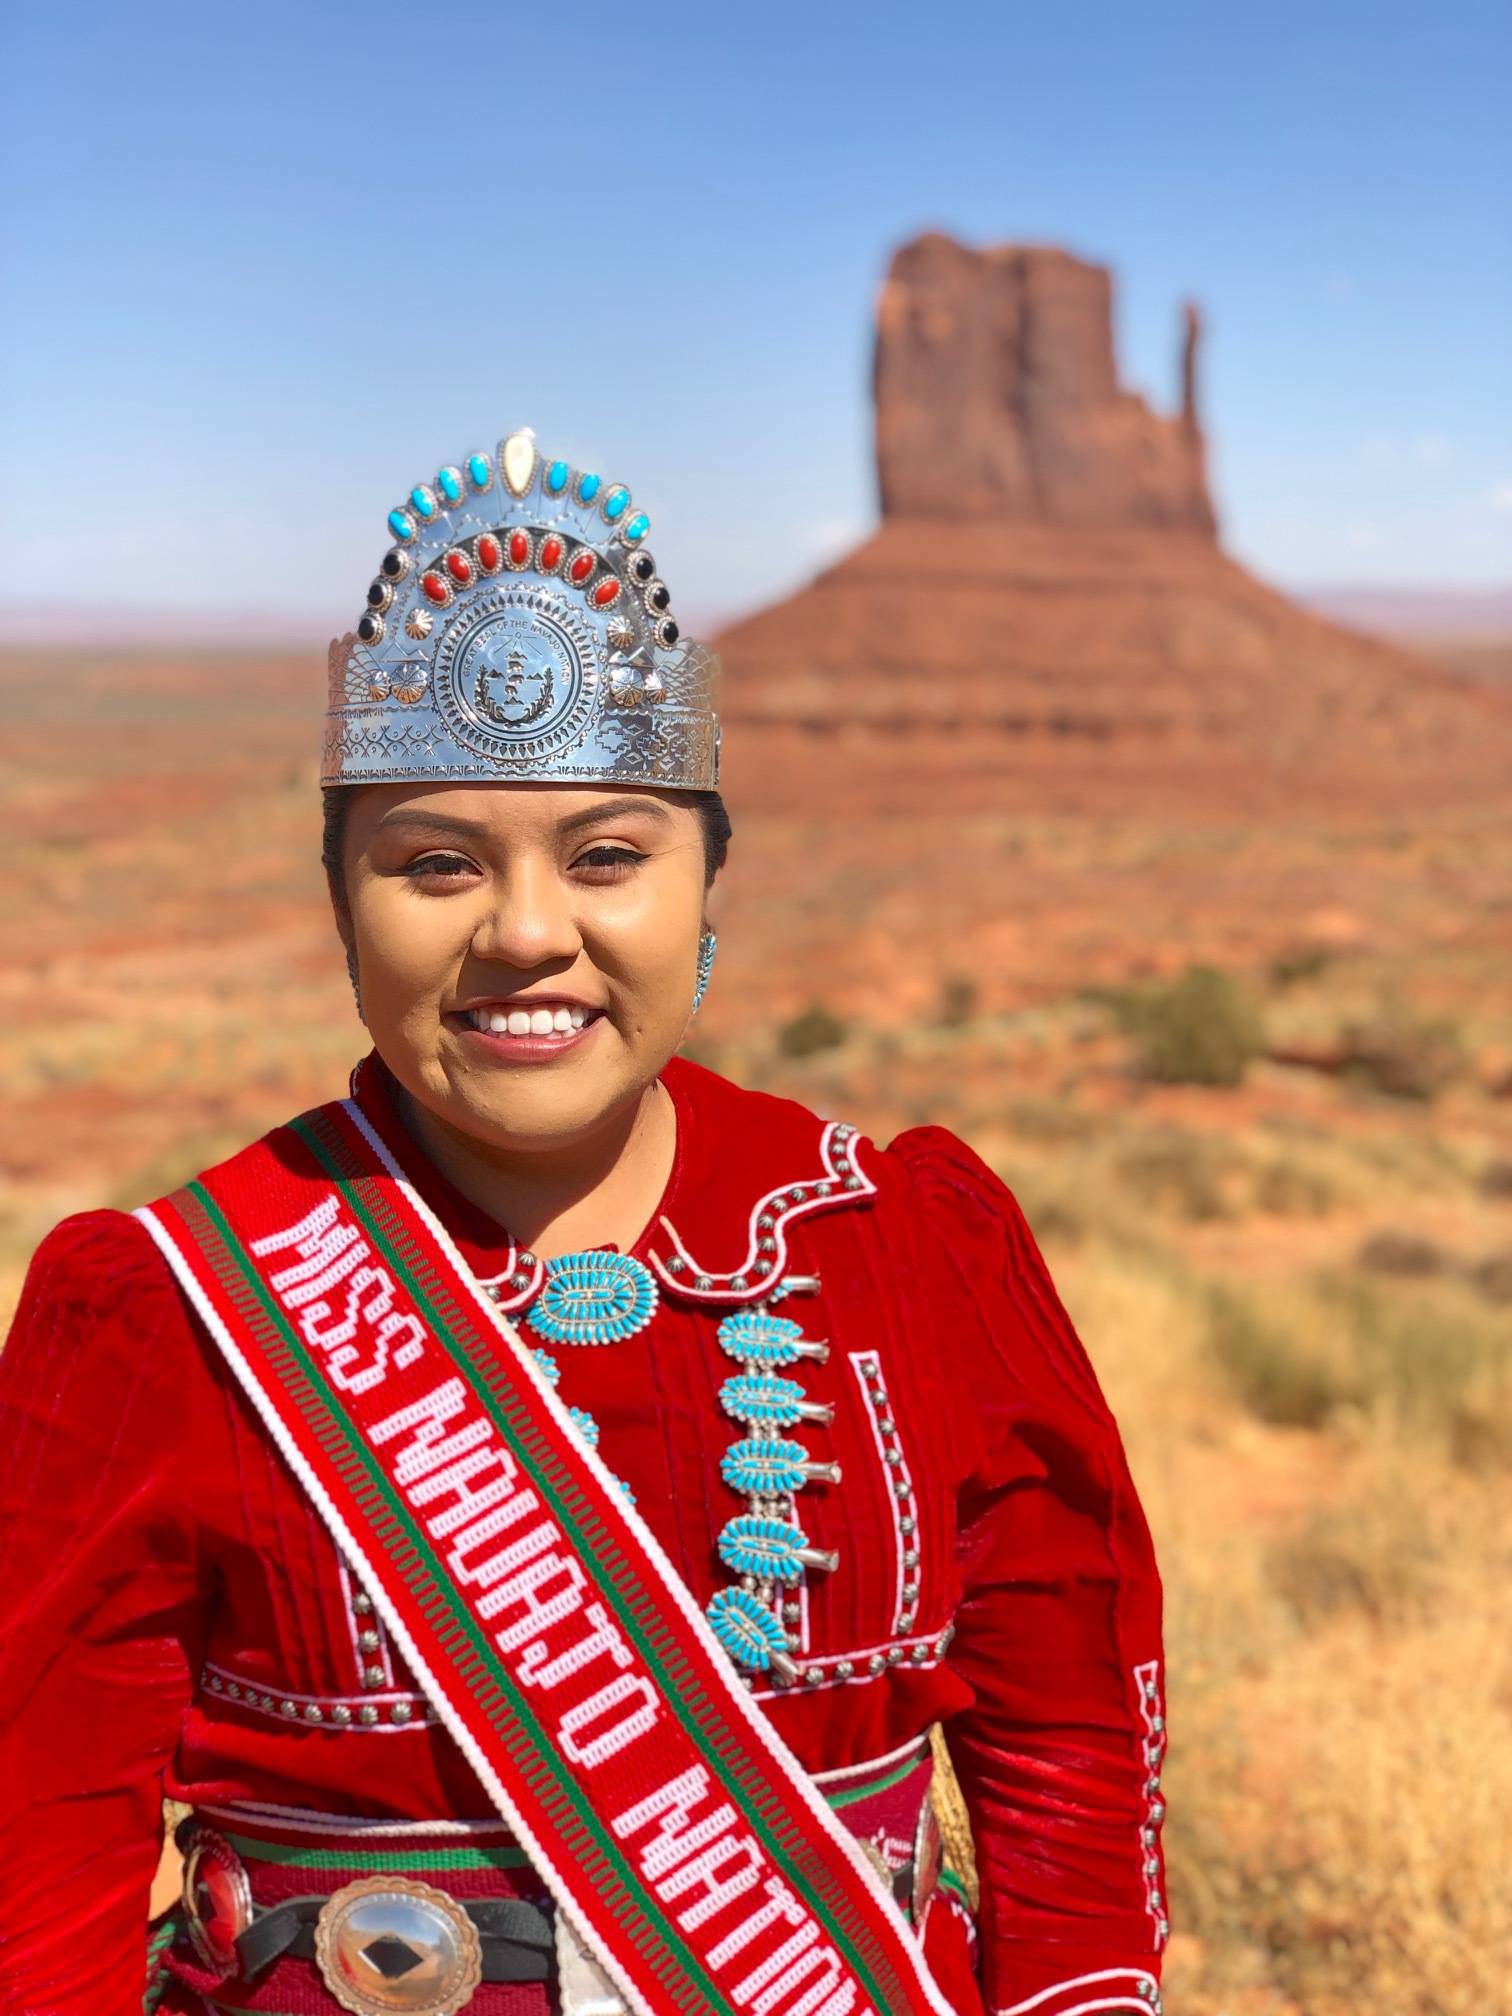 Public Service With A Crown Asu Alumna Becomes Miss Navajo Nation Asu Now Access Excellence Impact